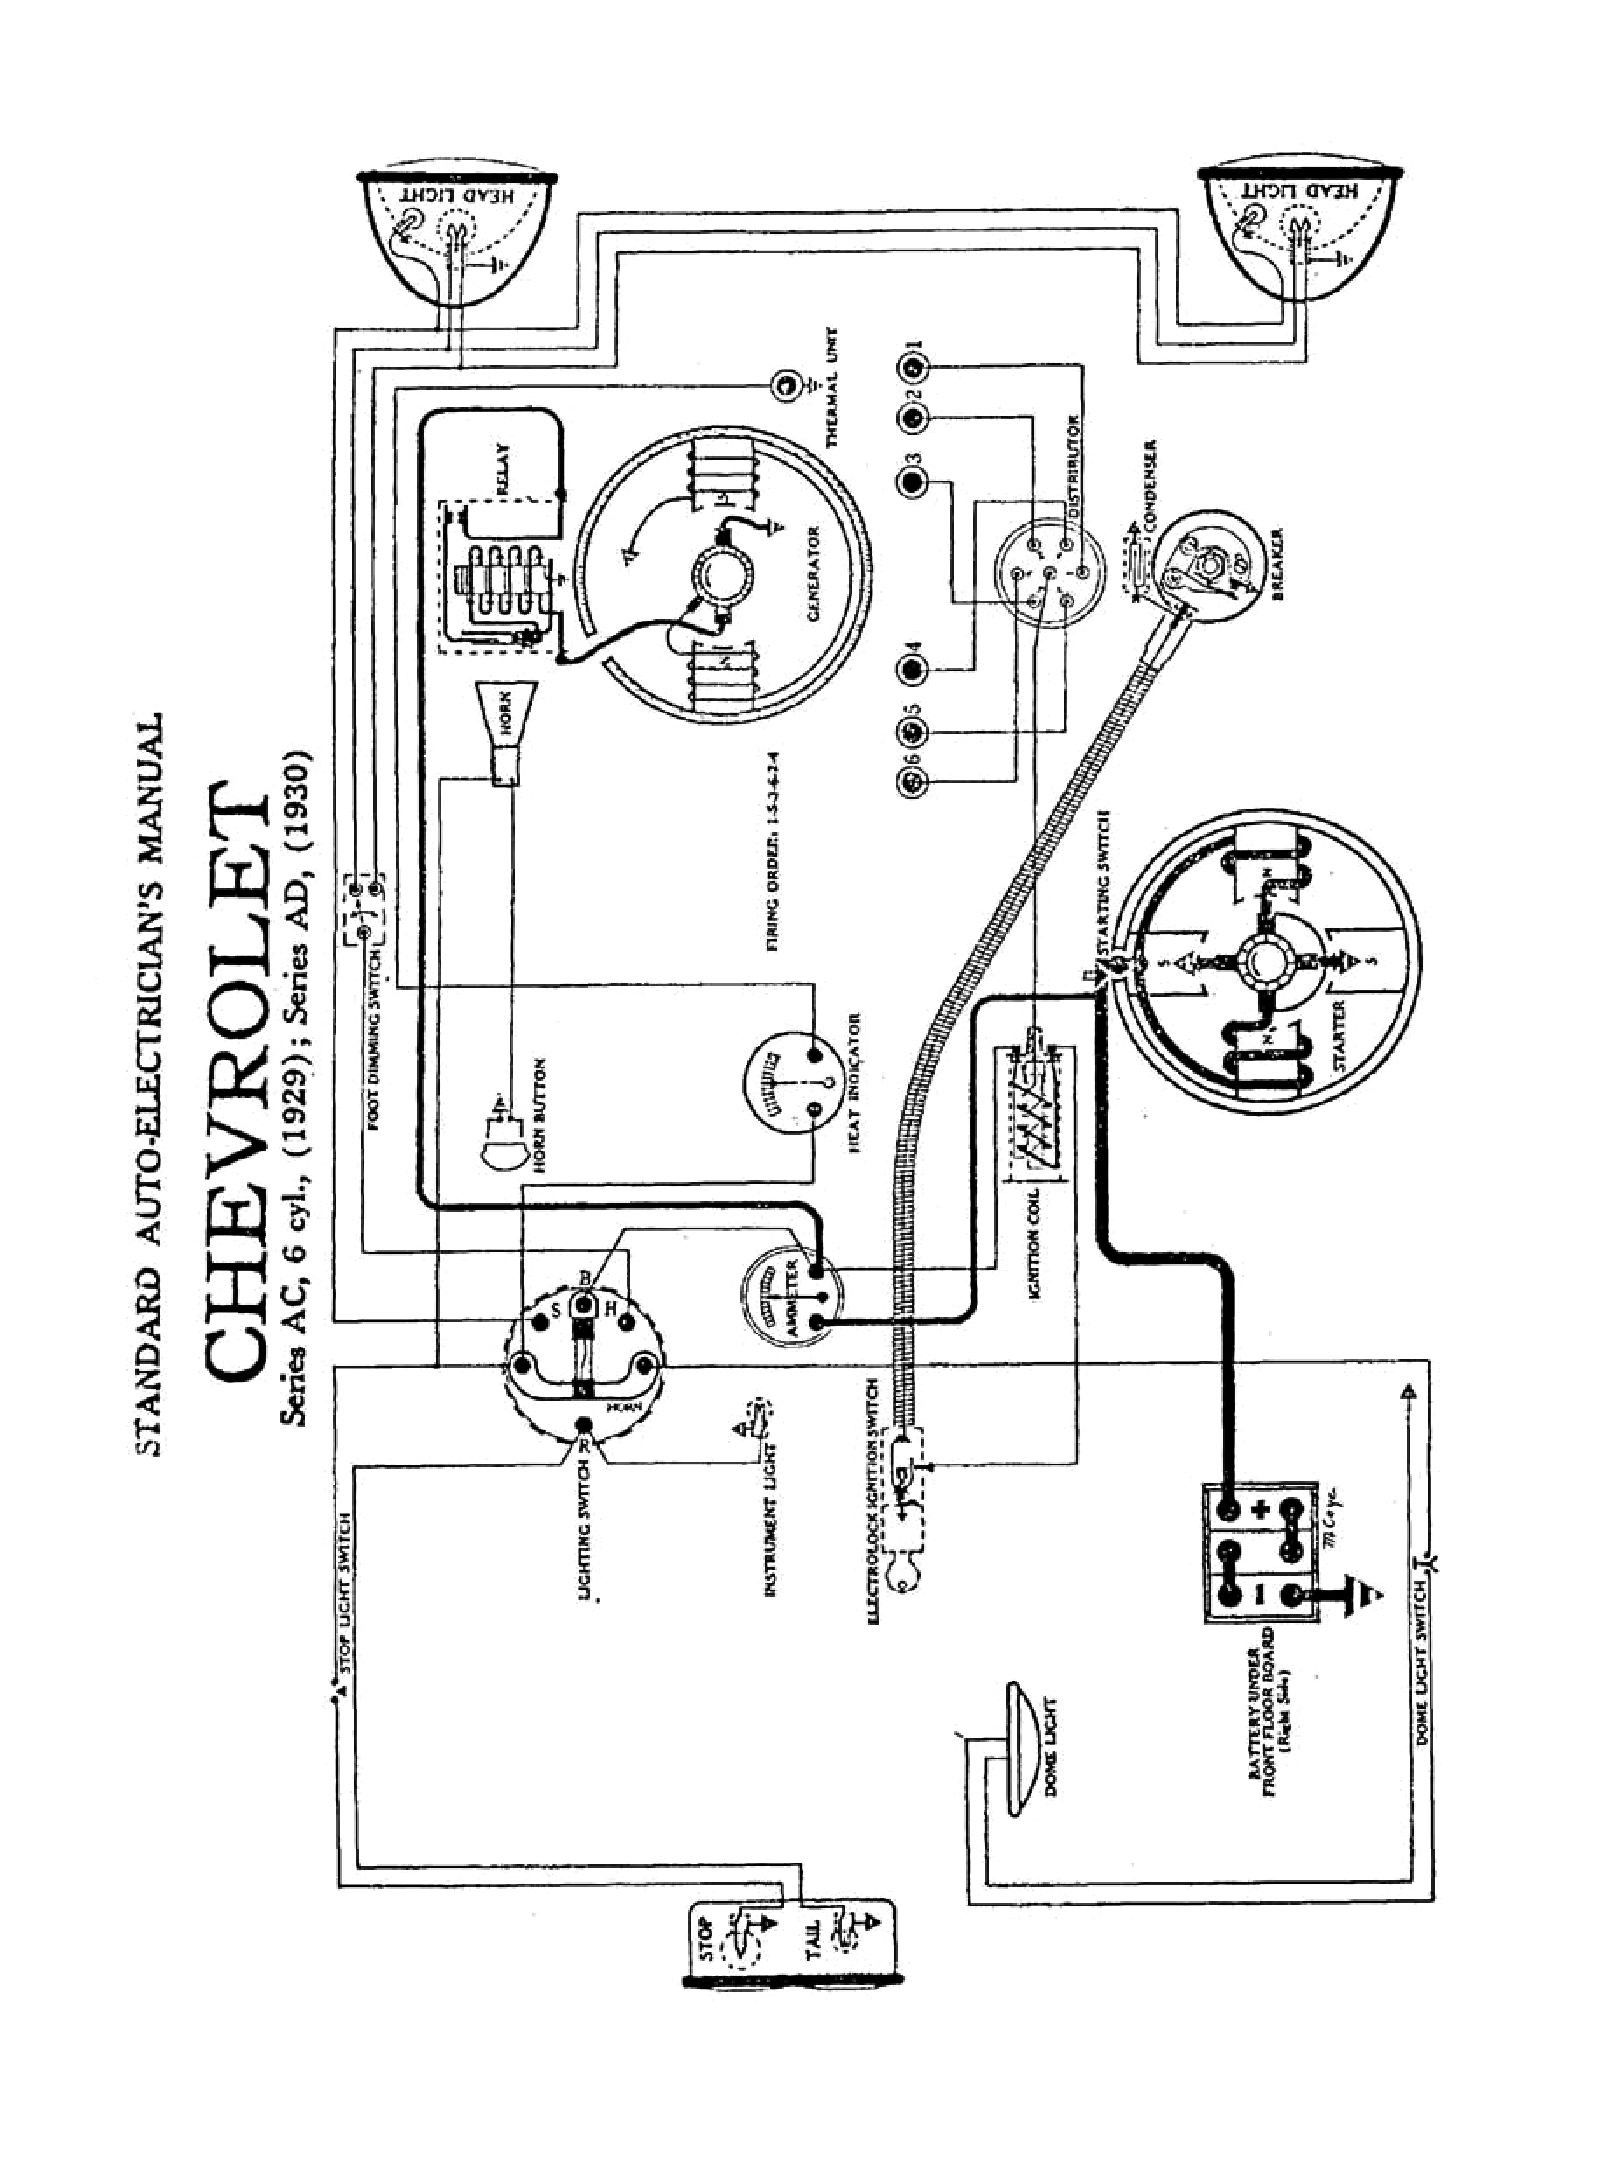 Wiring Diagram Of Zen Car